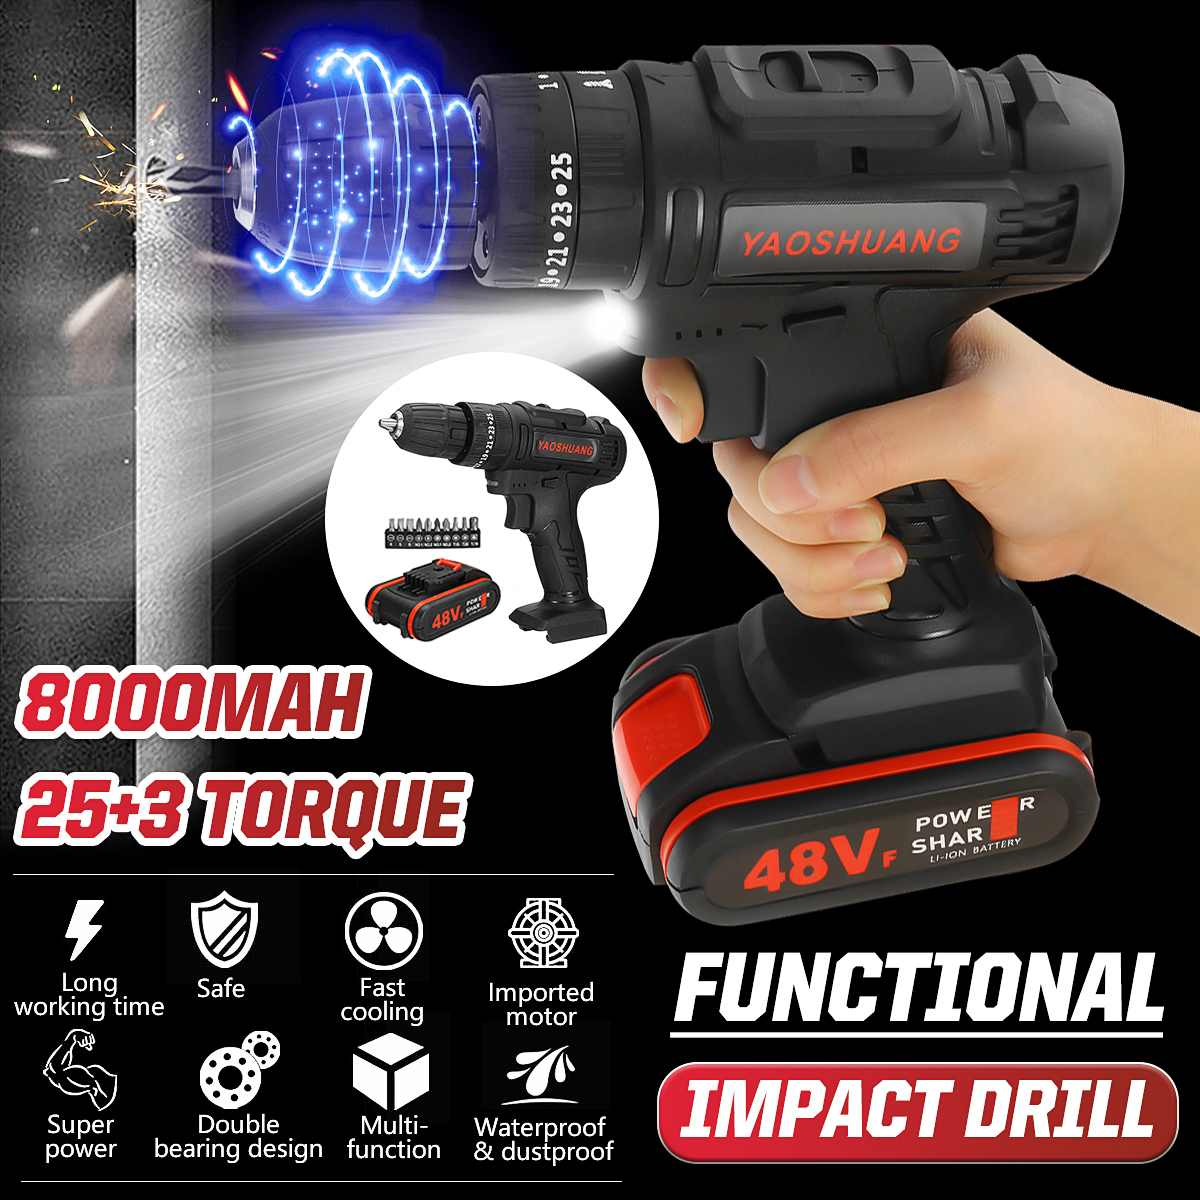 2 Battery 48V 3/8'' Cordless Rechargeable Electric Drill 2 Speed Impact Hammer Driver Battery Drill With 10Pcs Drill Bits Set